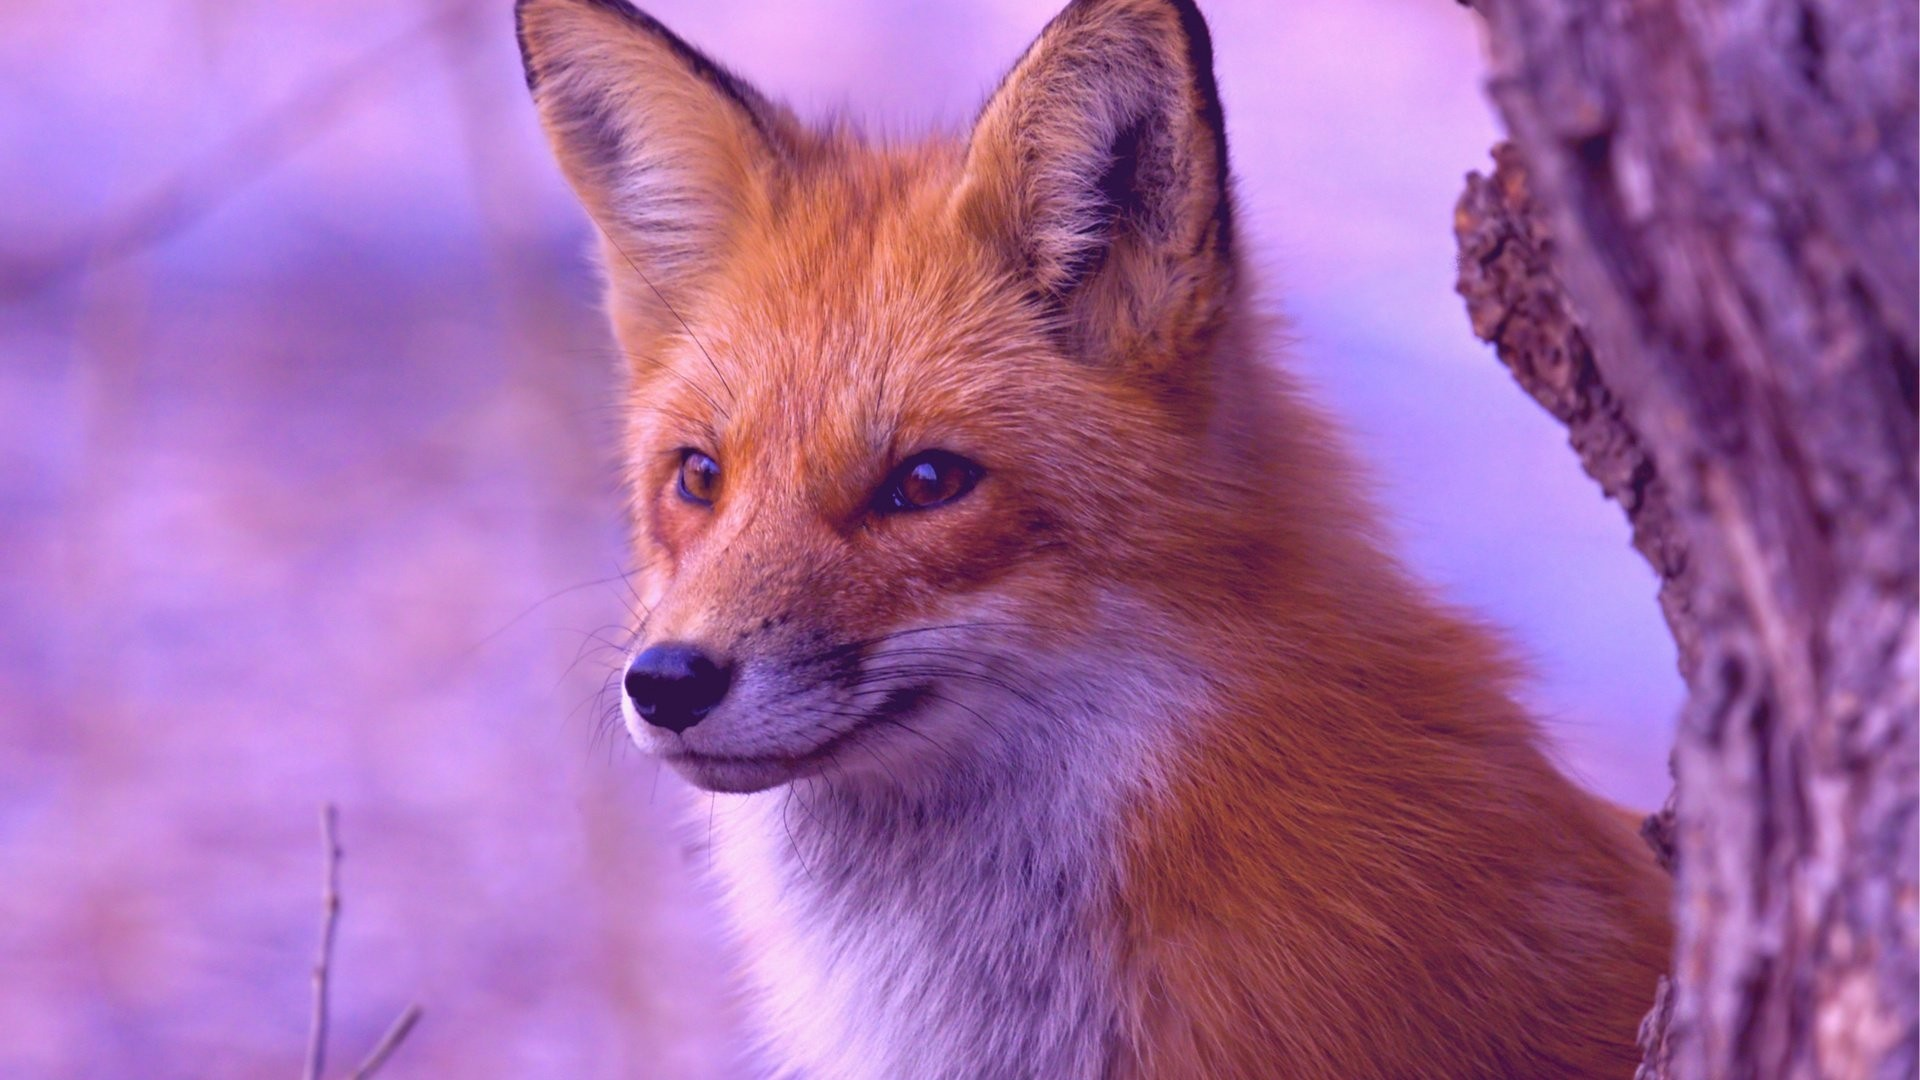 Fox computer wallpaper